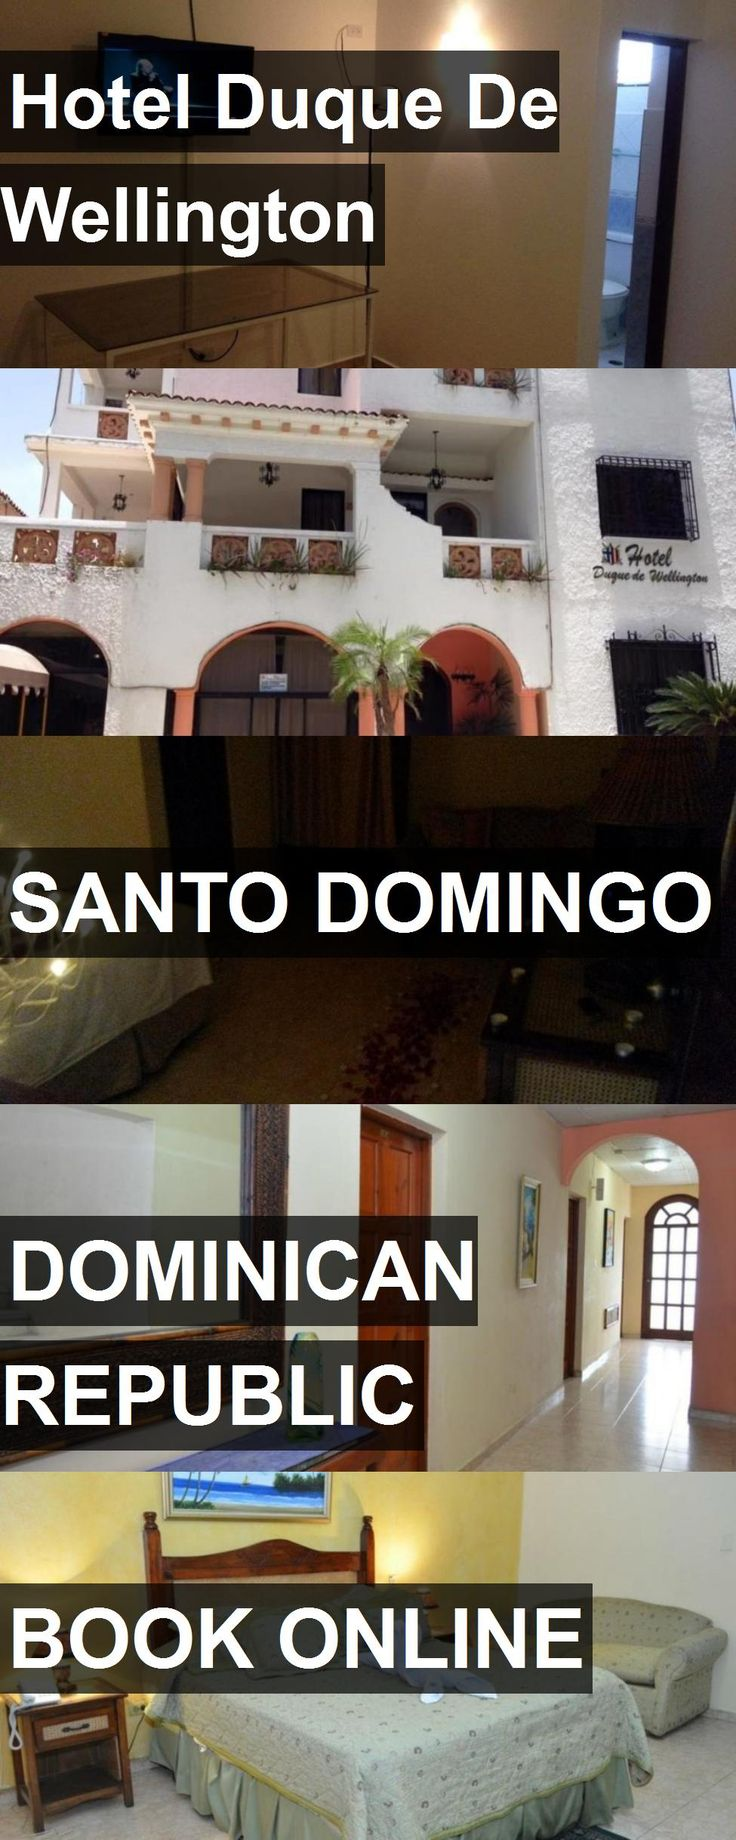 Hotel Hotel Duque De Wellington in Santo Domingo, Dominican Republic. For more information, photos, reviews and best prices please follow the link. #DominicanRepublic #SantoDomingo #HotelDuqueDeWellington #hotel #travel #vacation